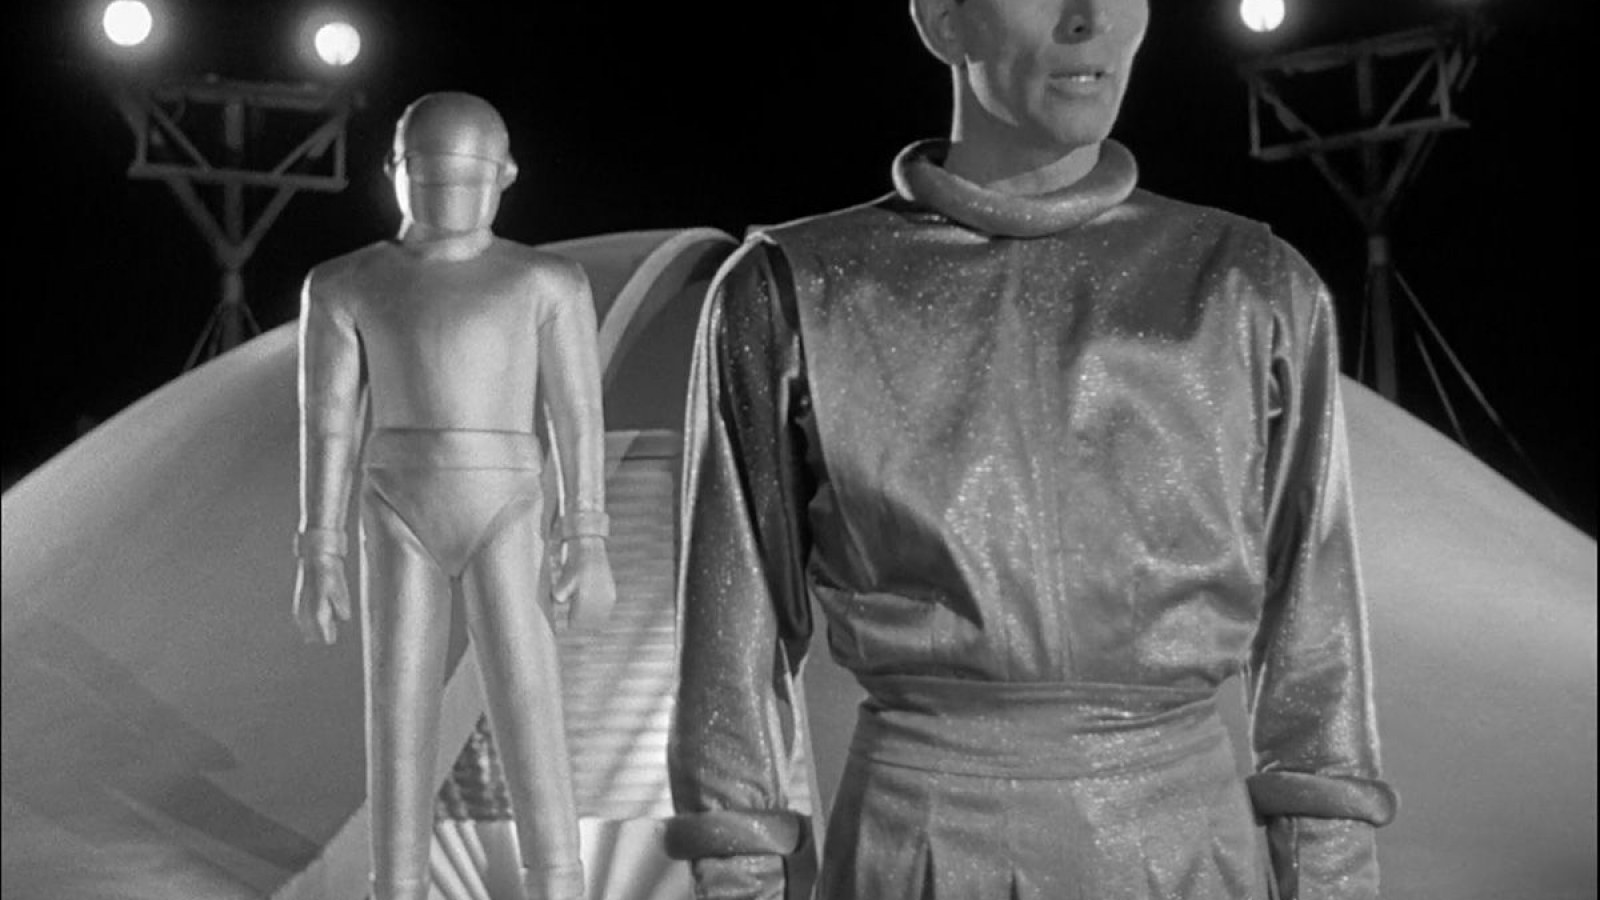 Ranked: The 50 Greatest Science Fiction Movies of All Time